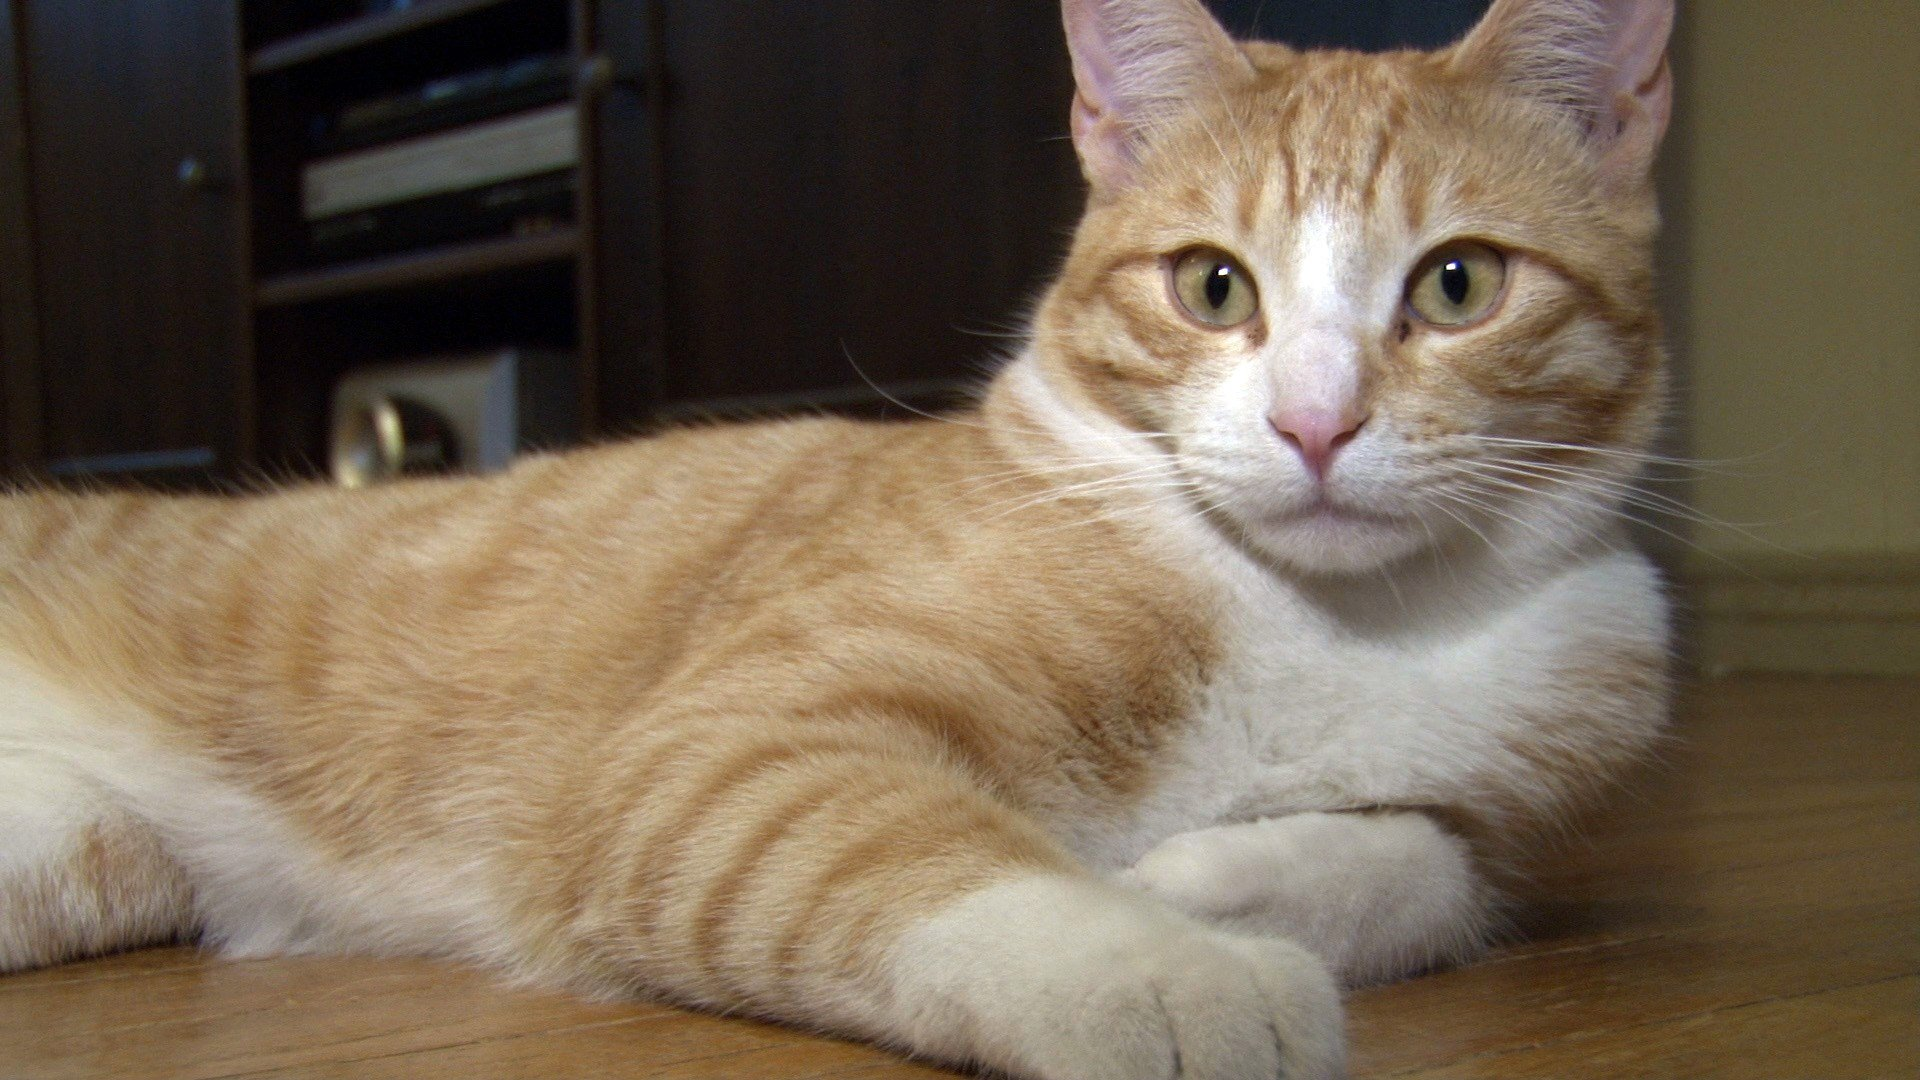 The parasite Toxoplasma gondii is commonly found in cats and transferred to humans through their feces